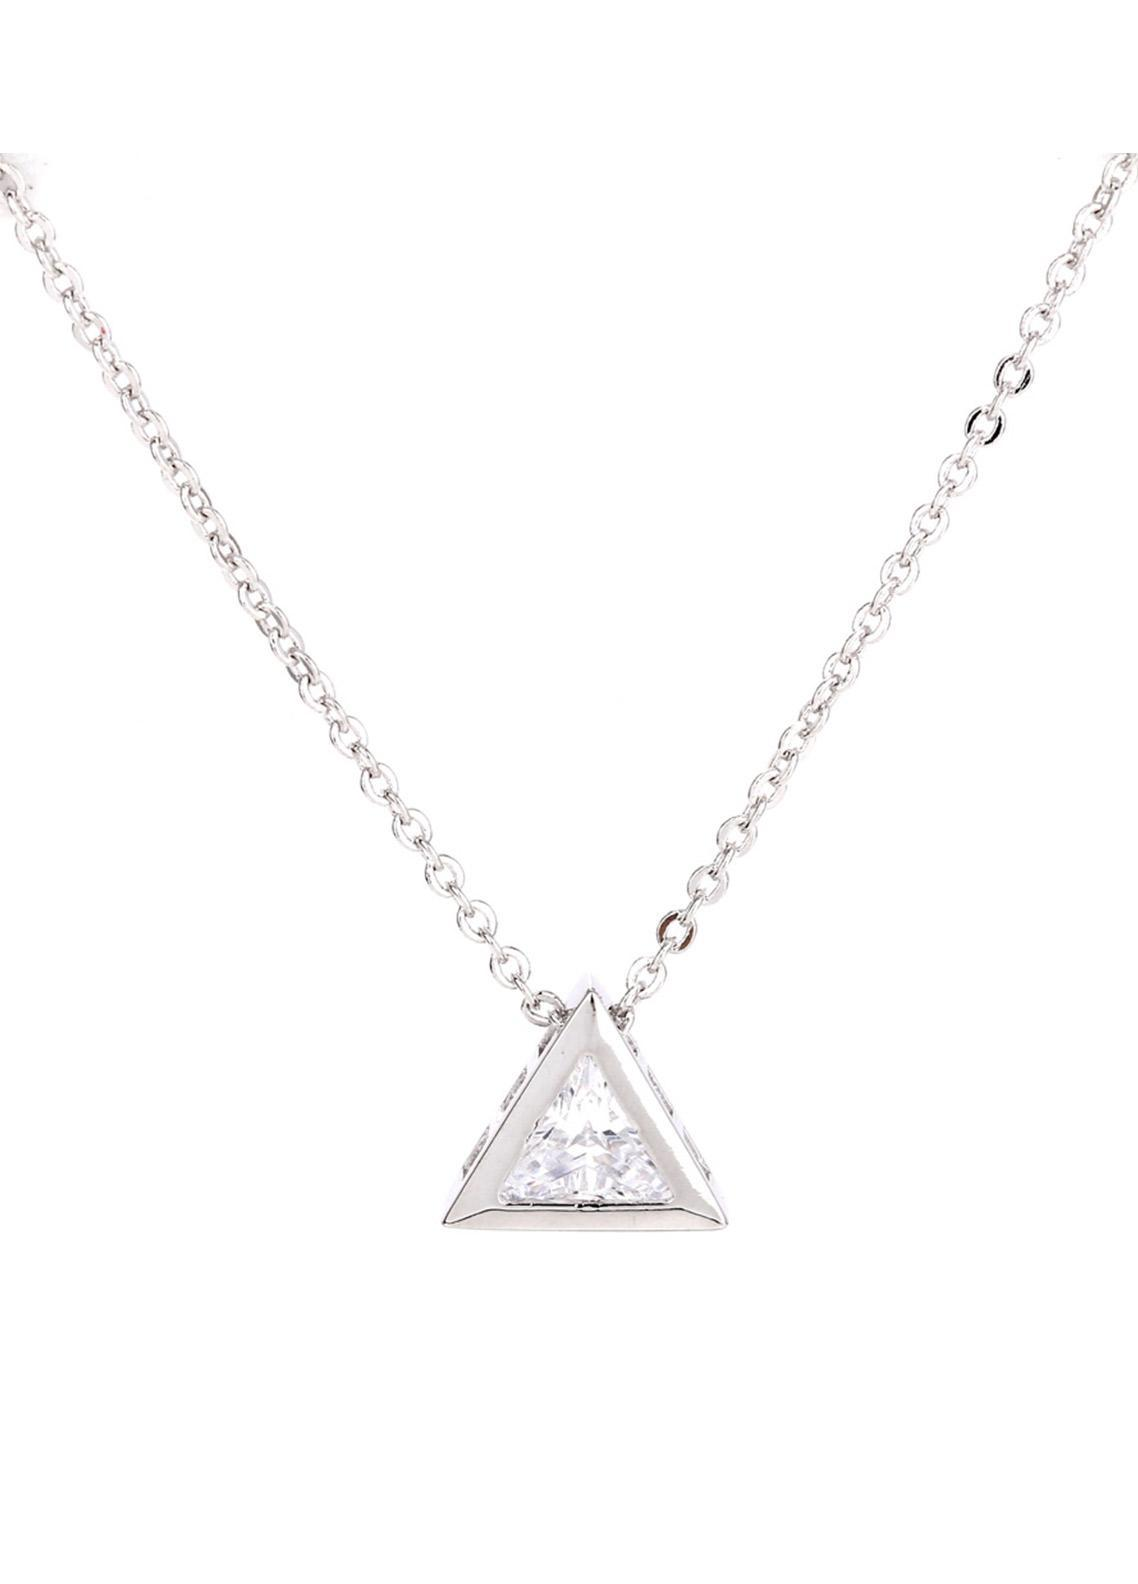 Anna Grace London by Silk Avenue Silver Plated Crystal Triangle Necklace AGN0032 - Ladies Jewellery